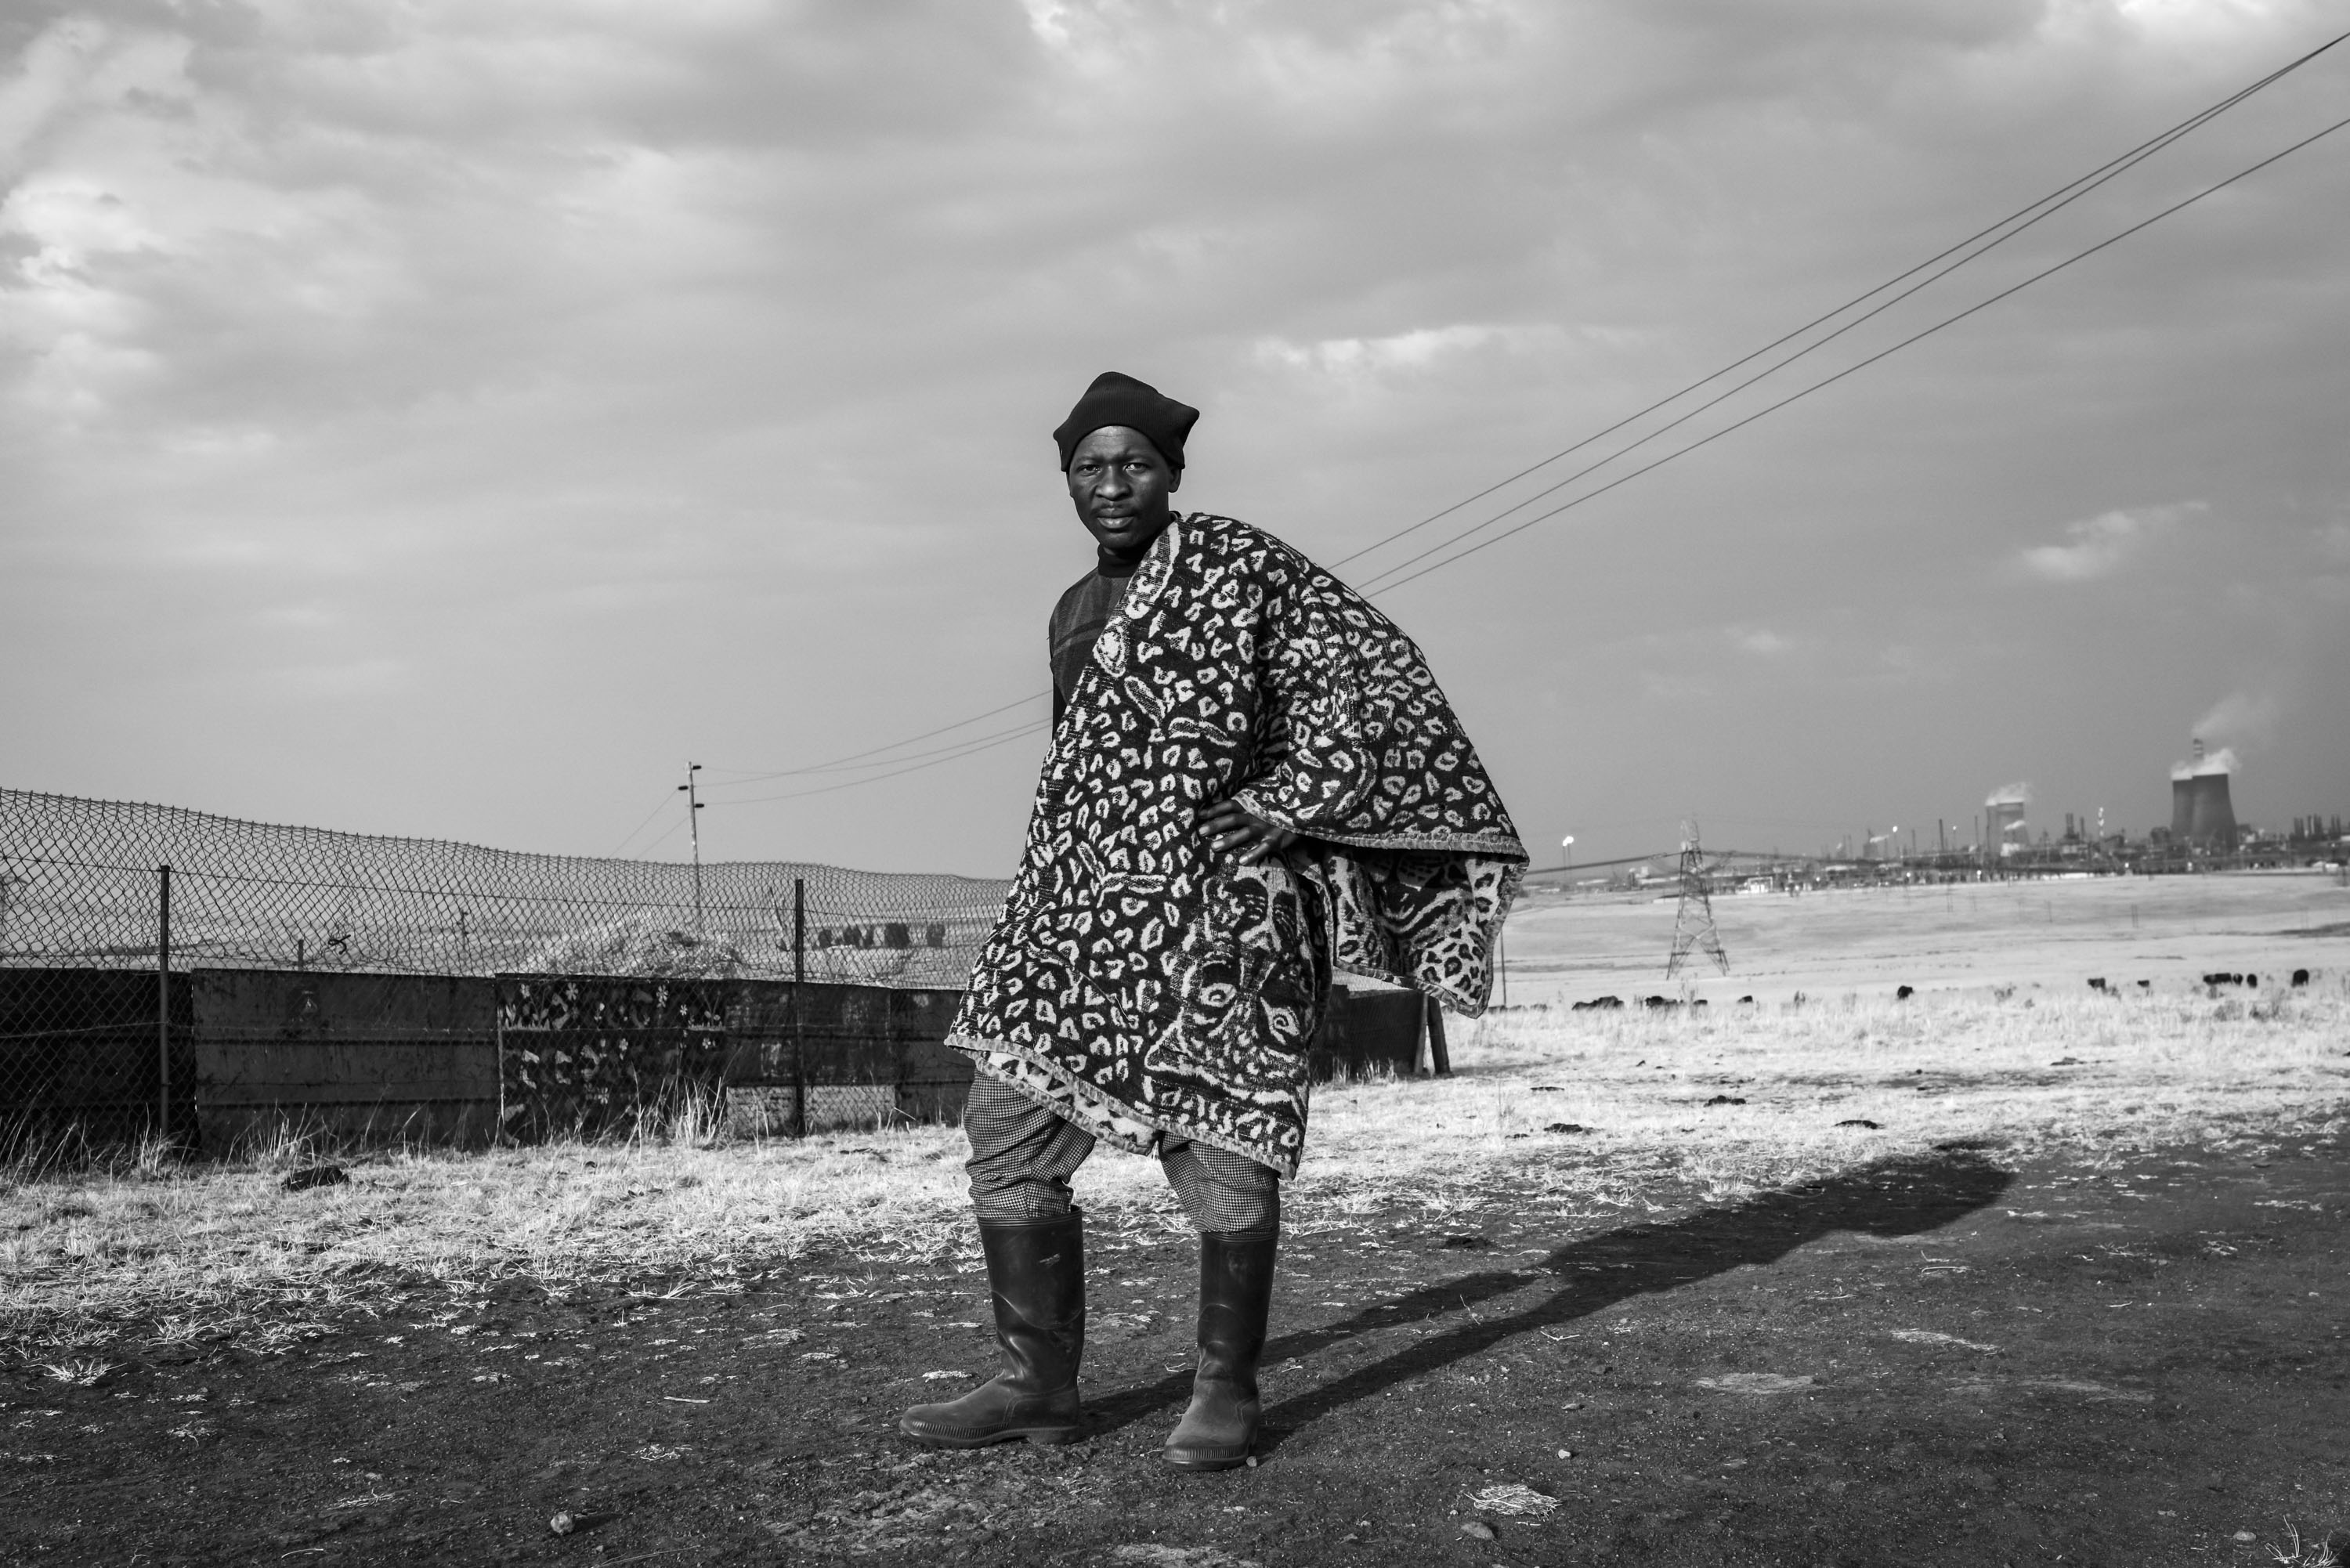 Tumisang Mafa keeps livestock on a patch of land between Secunda and eMbalenhle, near the Sasol Synfuels Plant. 'I wake up from fever and coughing when I am sleeping,' he says. eMbalenhle, Mpumalanga.